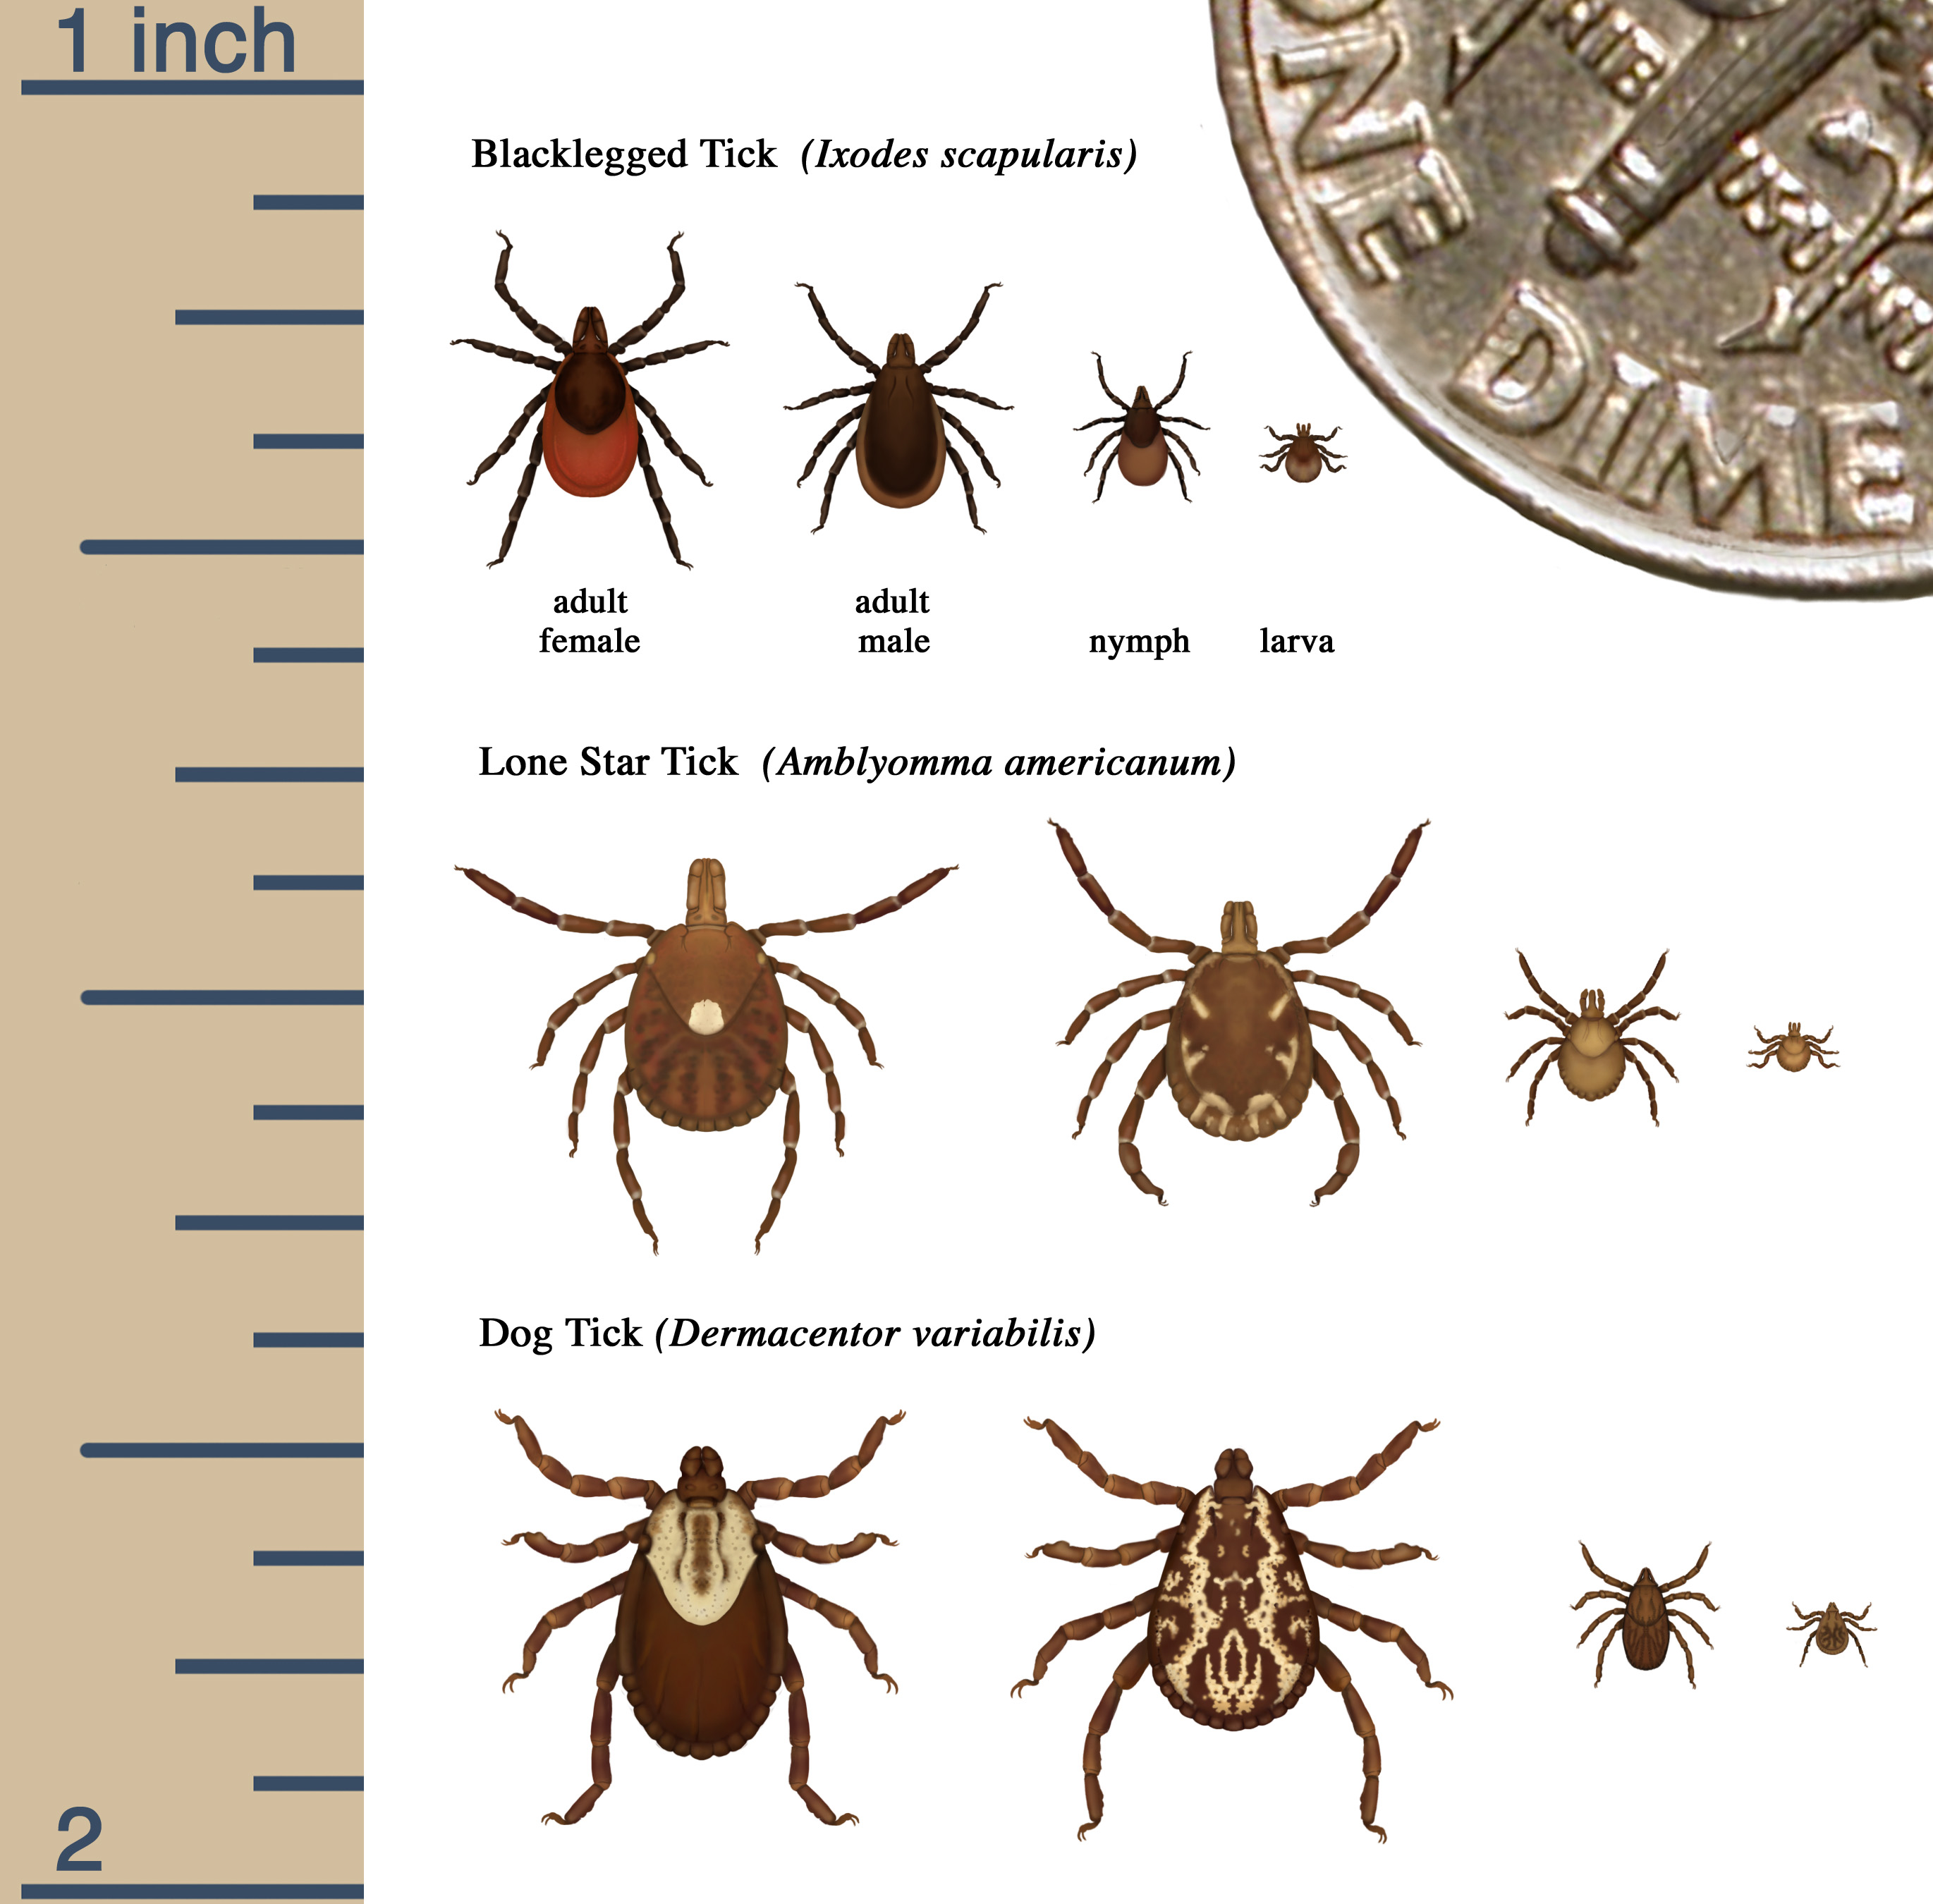 Cdc S Tick Identification Chart Ilrates The Size And Earance Of Theblacklegged Lone Star